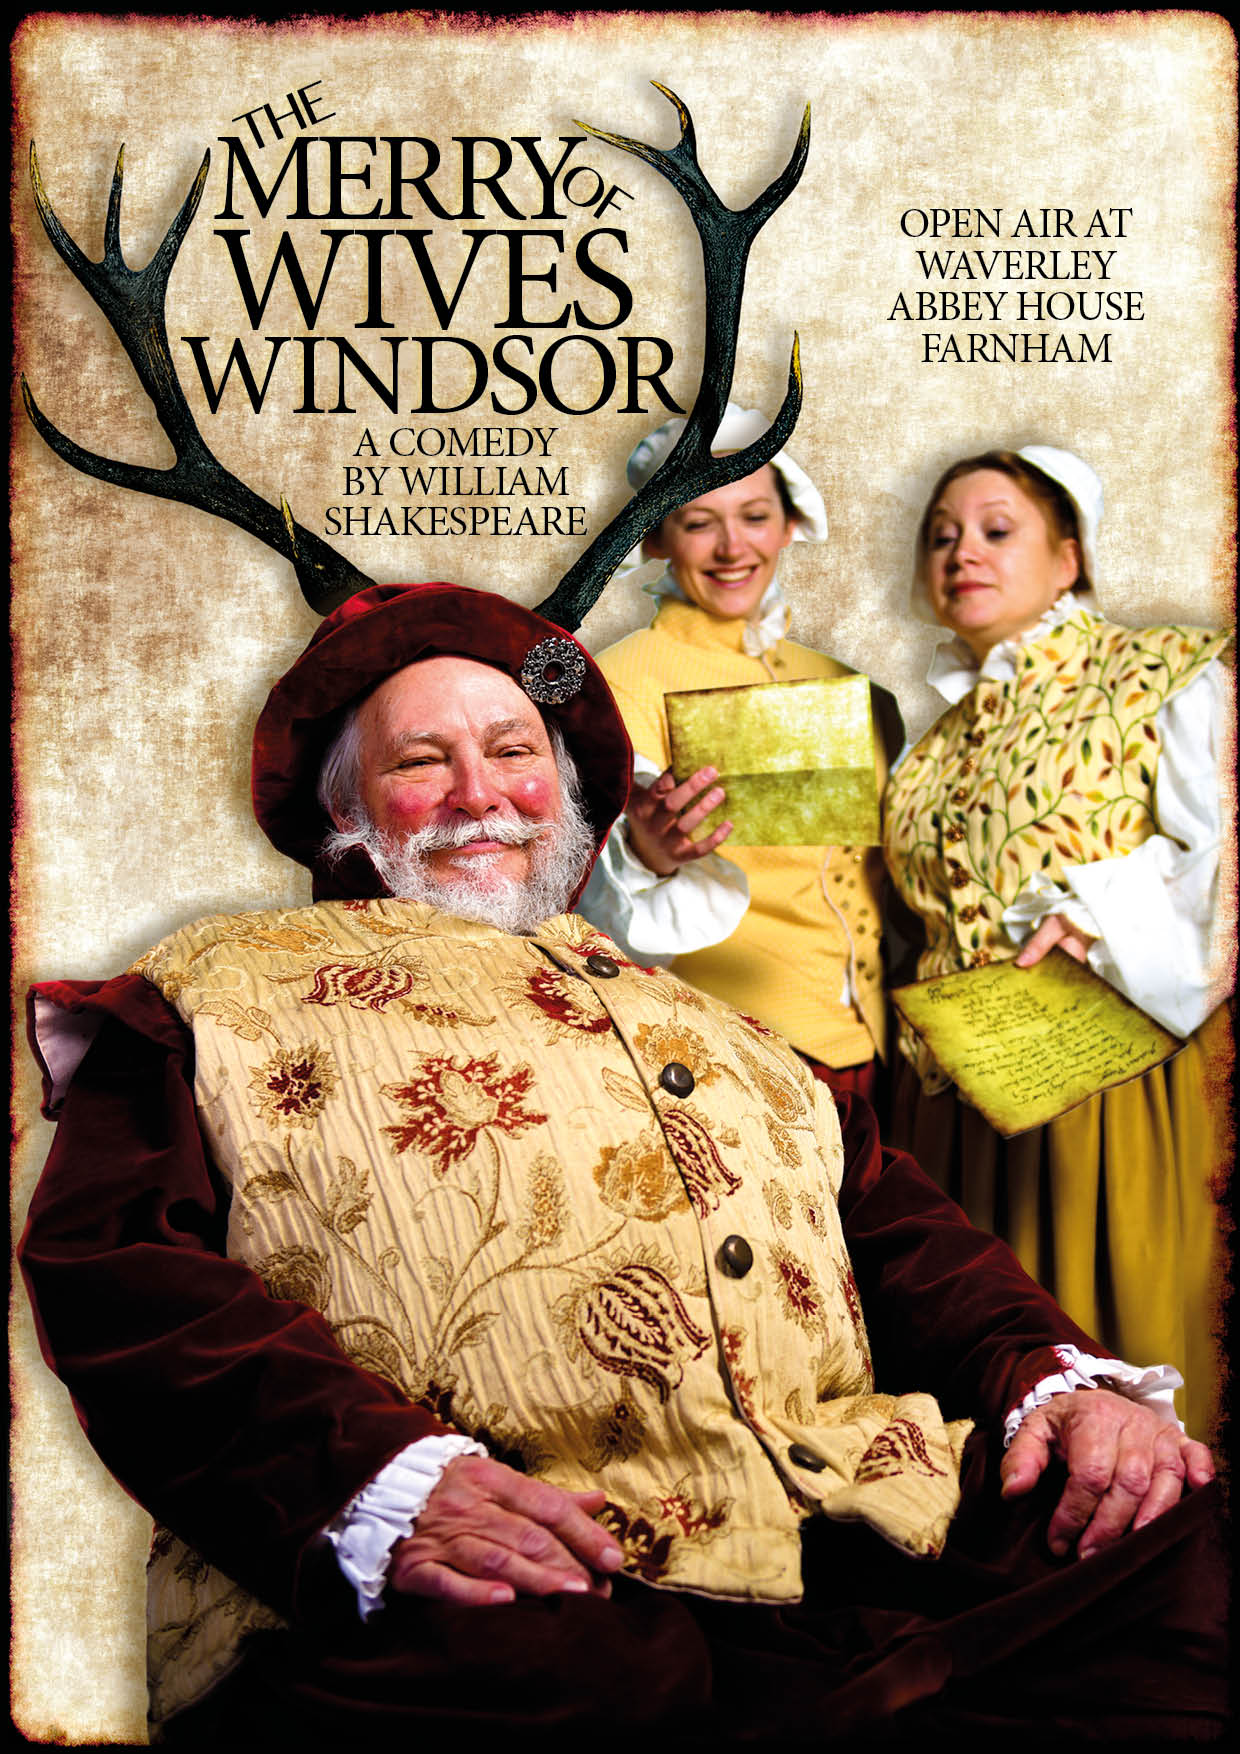 a character analysis of the merry wives of windsor Analysis and discussion of characters in william shakespeare's the merry wives of windsor.